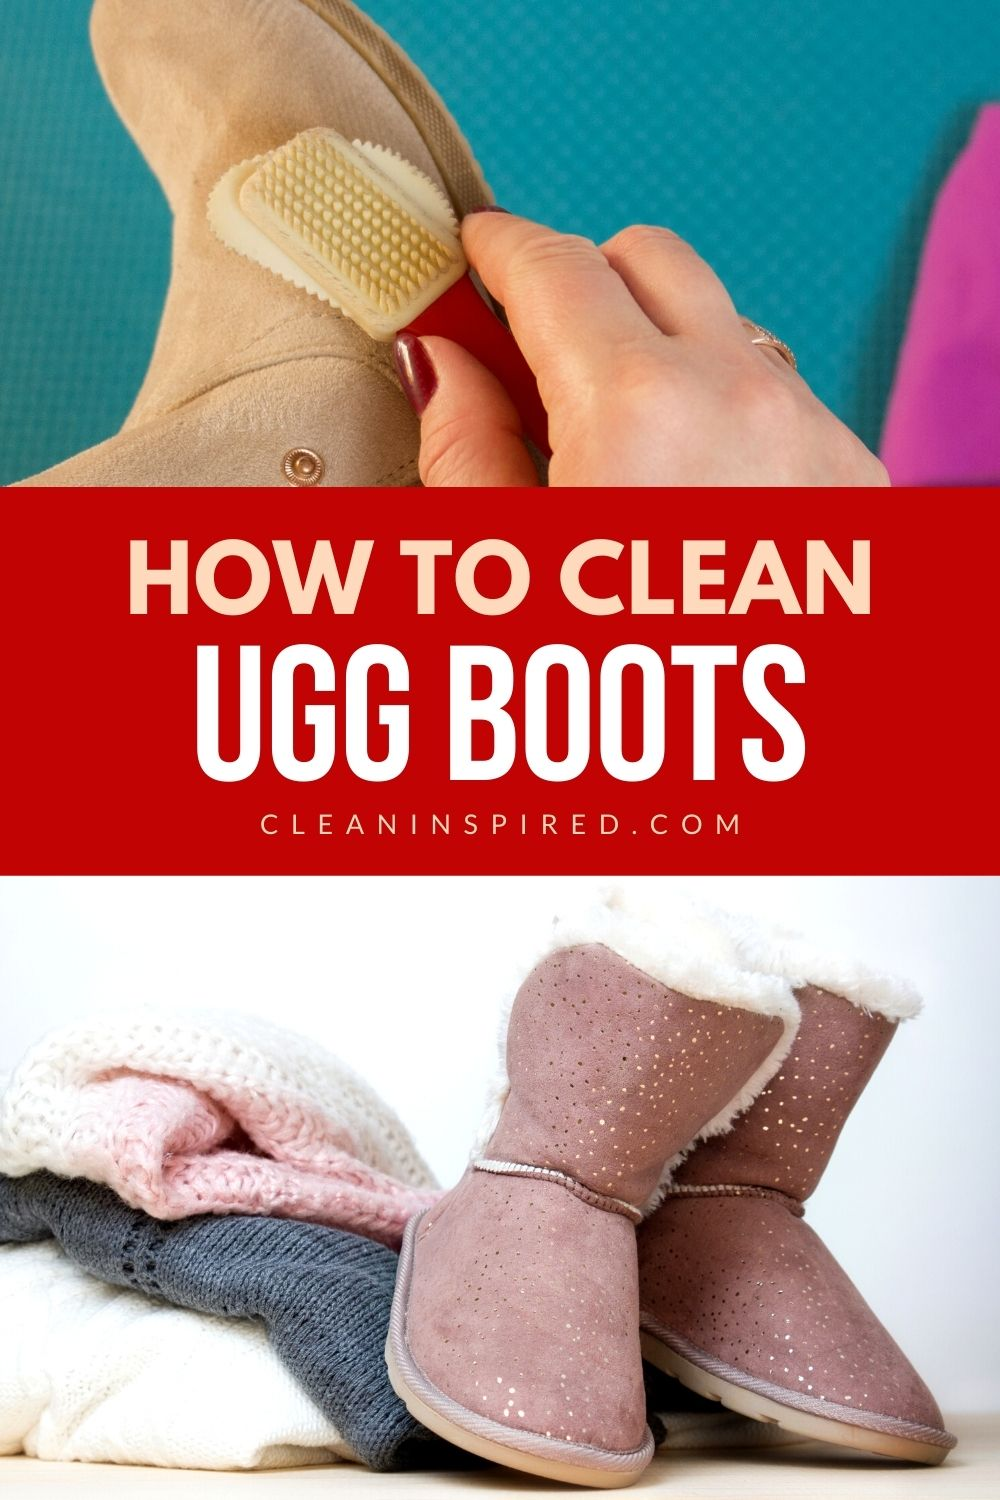 How To Clean Ugg Boots And Make It Last Longer Cleaning Ugg Boots Boots Diy Ugg Boots